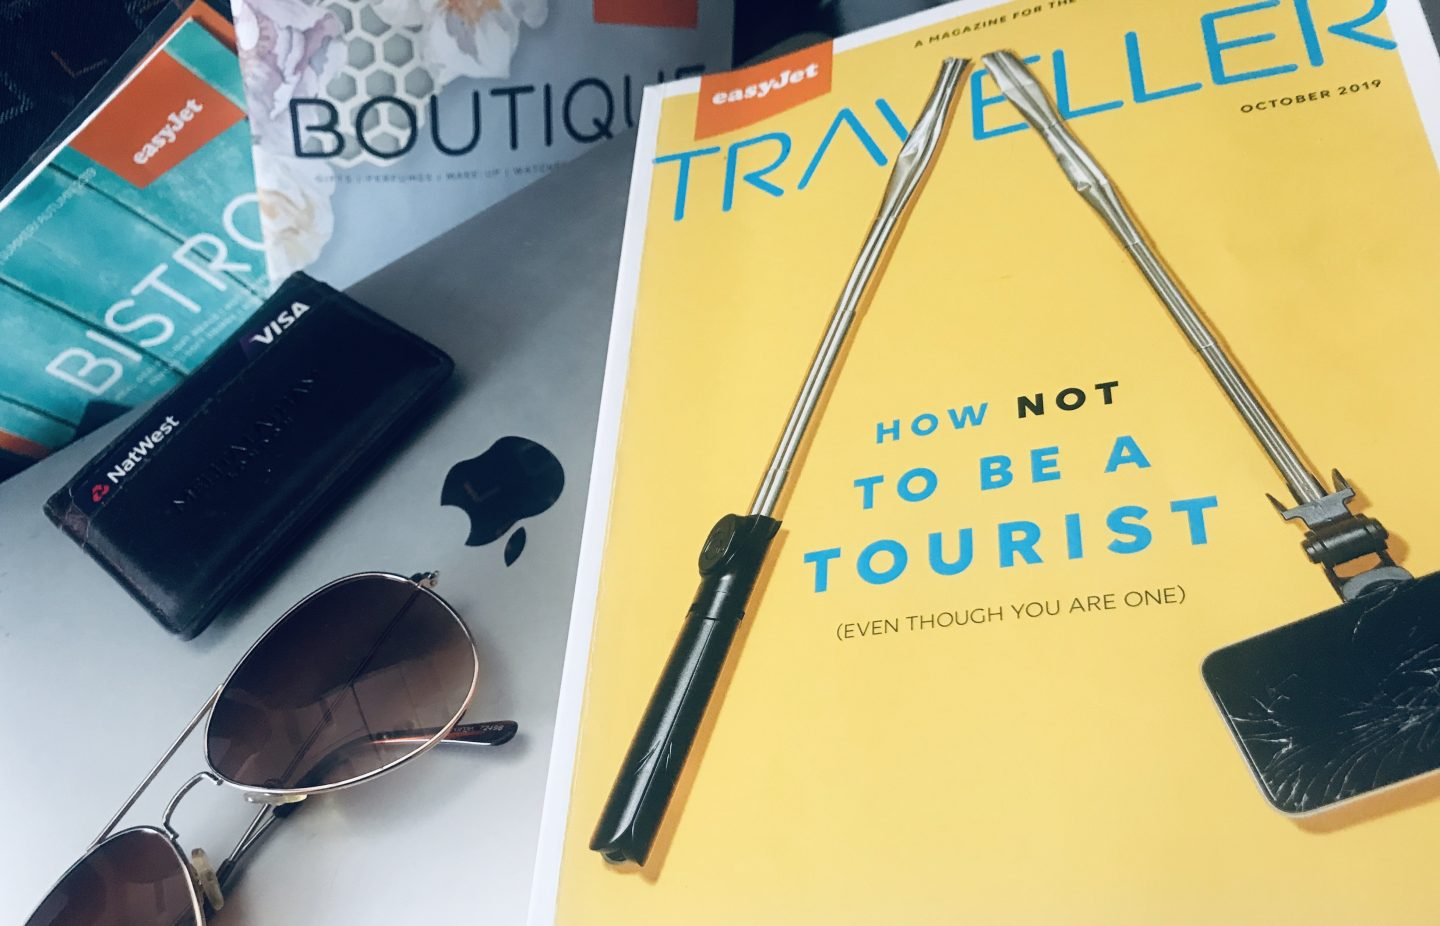 Touristy or untouristy which are you?